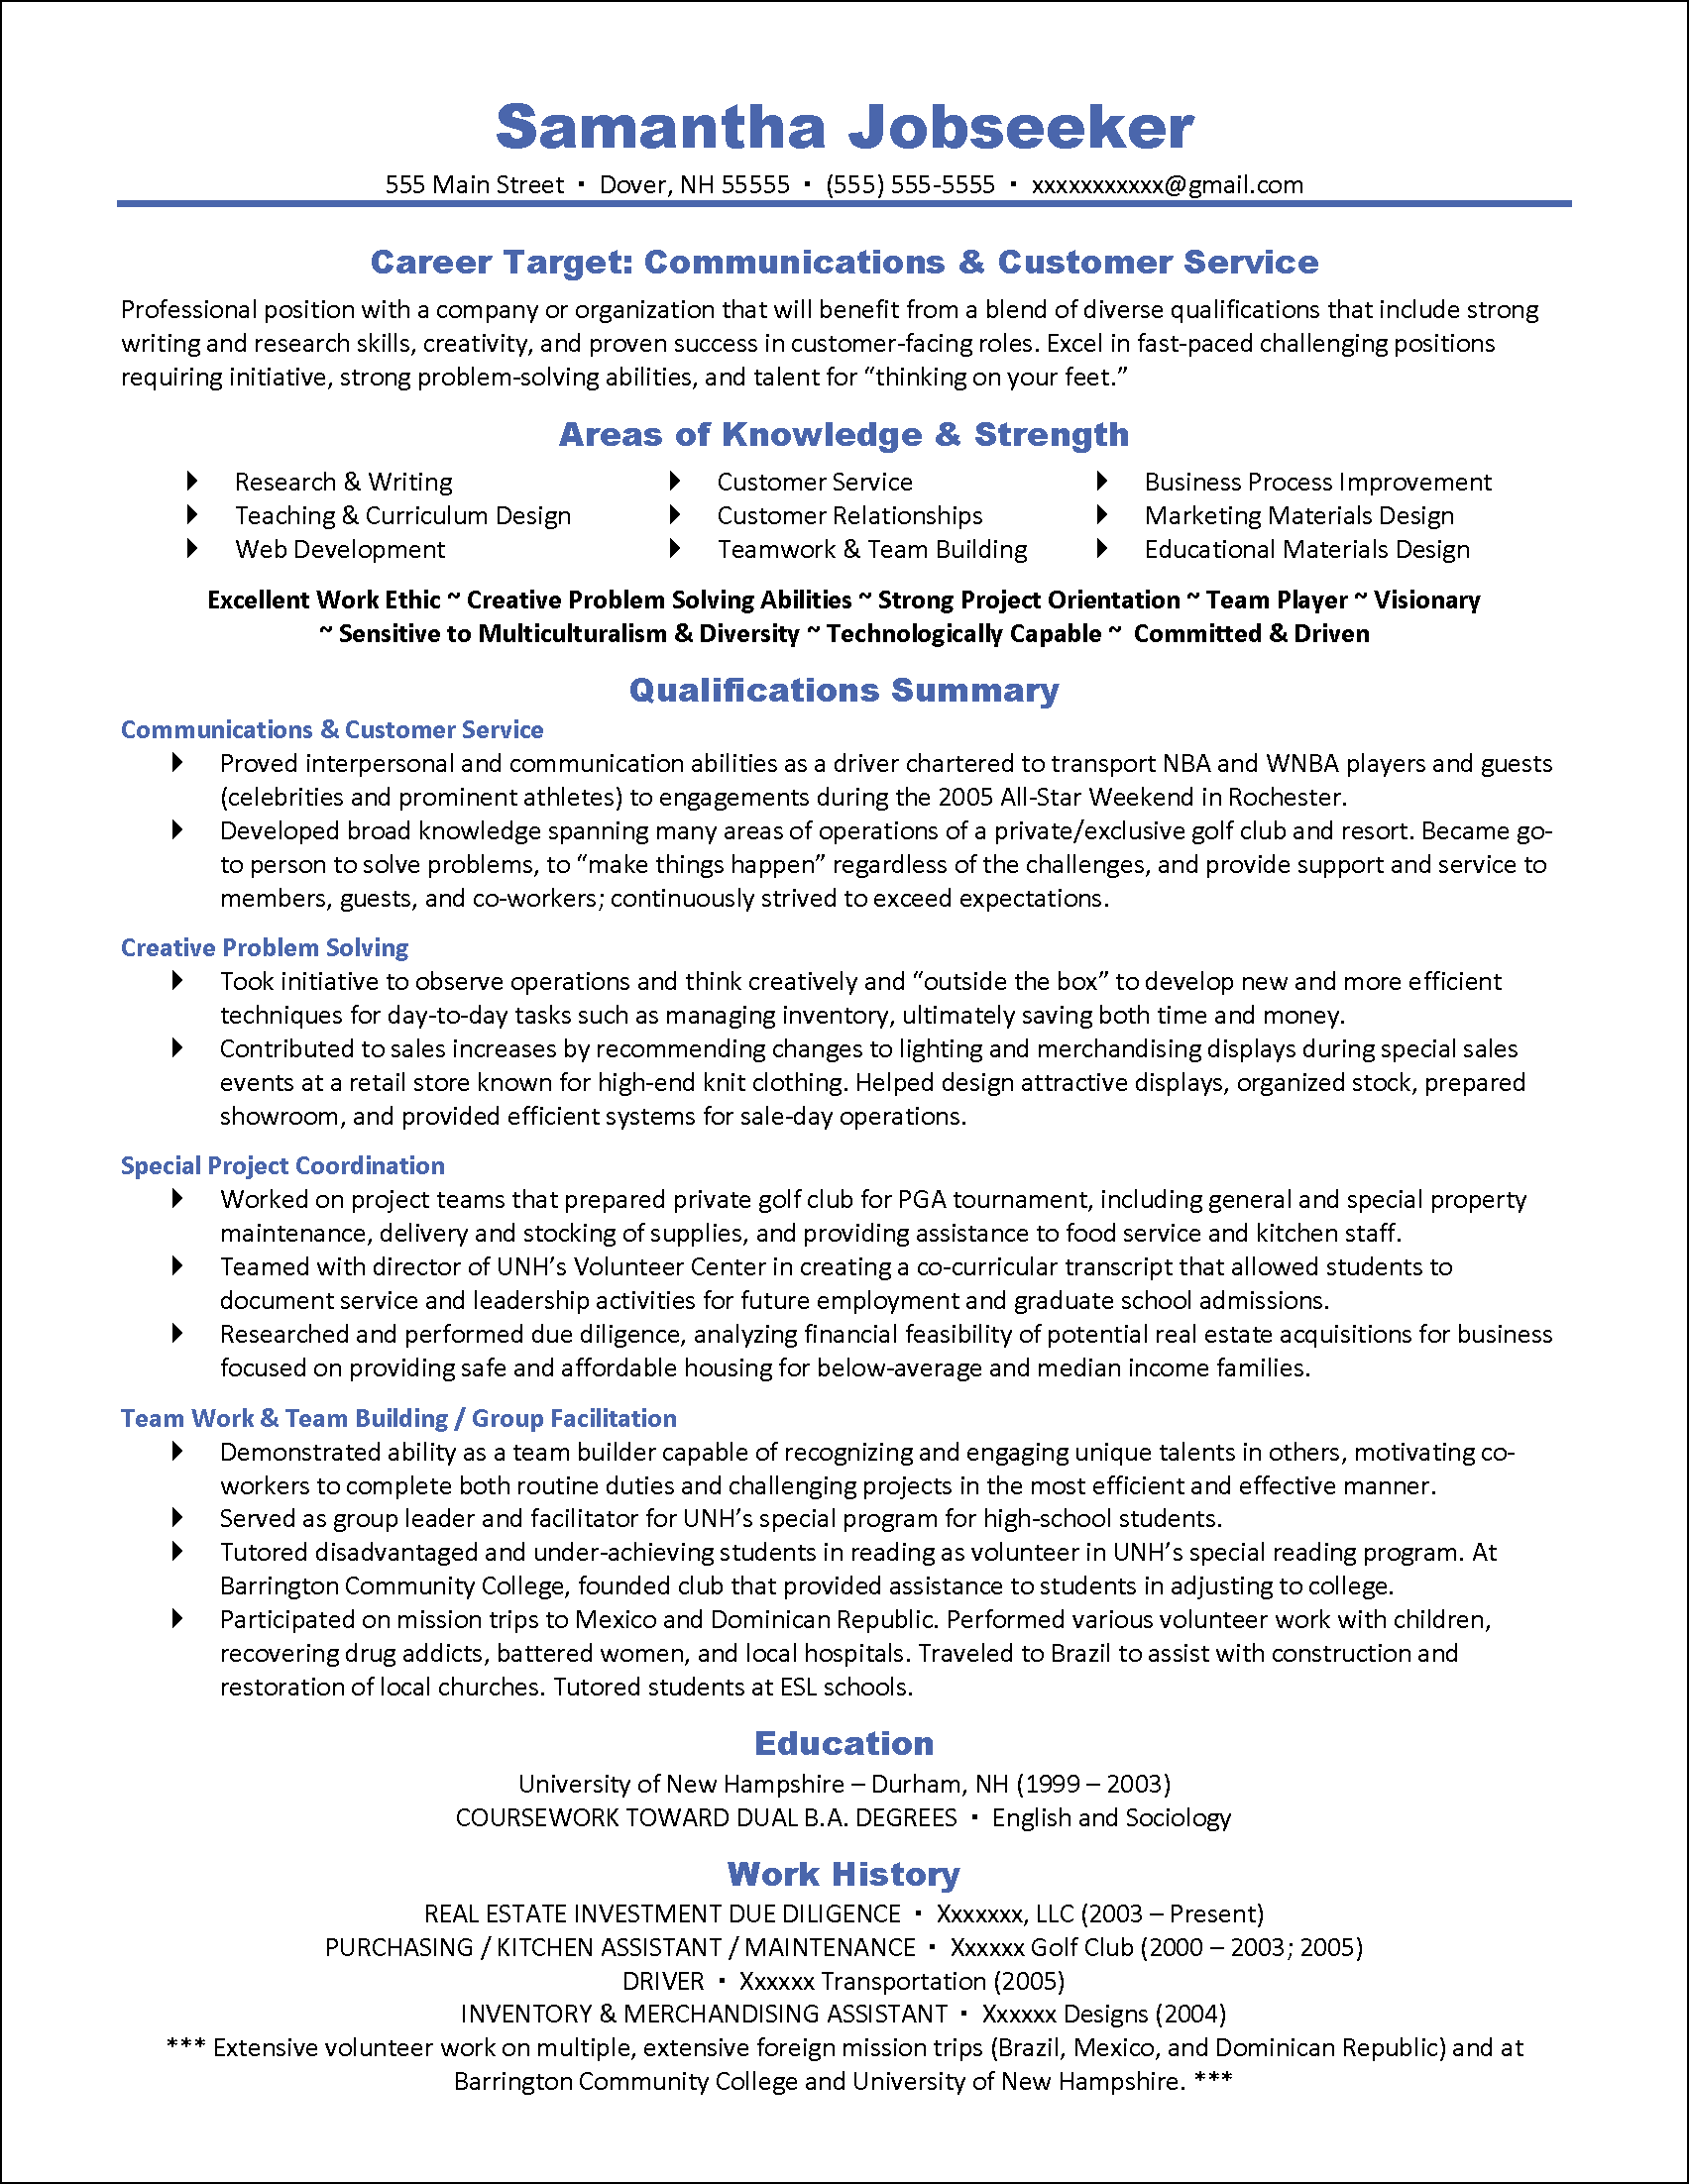 Example Targeted Resume for Communications